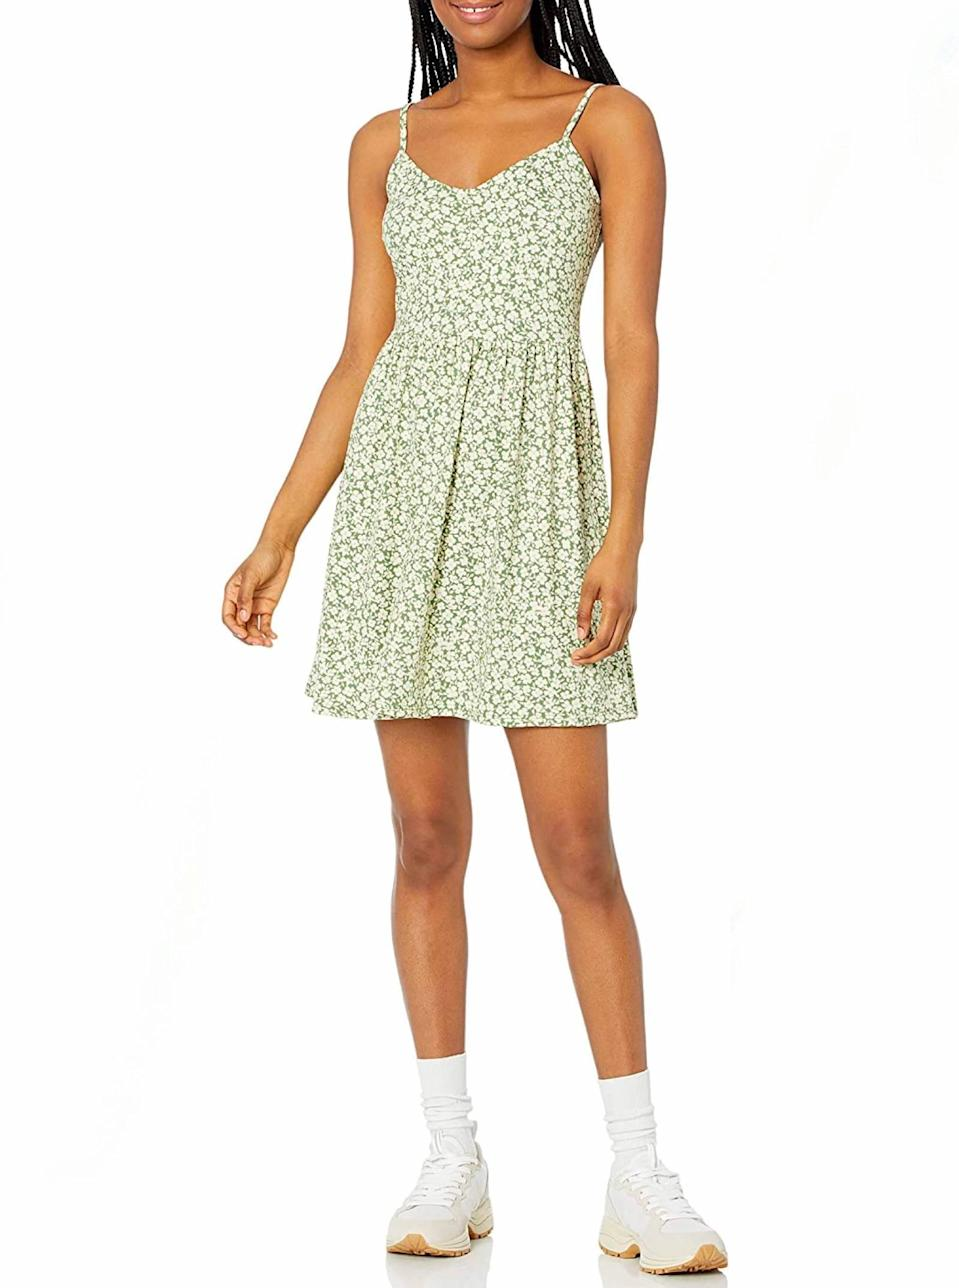 """A daintier green cami dress for when you're listening to the angel on your shoulder instead. $23, Amazon. <a href=""""https://www.amazon.com/Amazon-Brand-Spaghetti-Printed-X-Large/dp/B08MW1BKKF/"""" rel=""""nofollow noopener"""" target=""""_blank"""" data-ylk=""""slk:Get it now!"""" class=""""link rapid-noclick-resp"""">Get it now!</a>"""